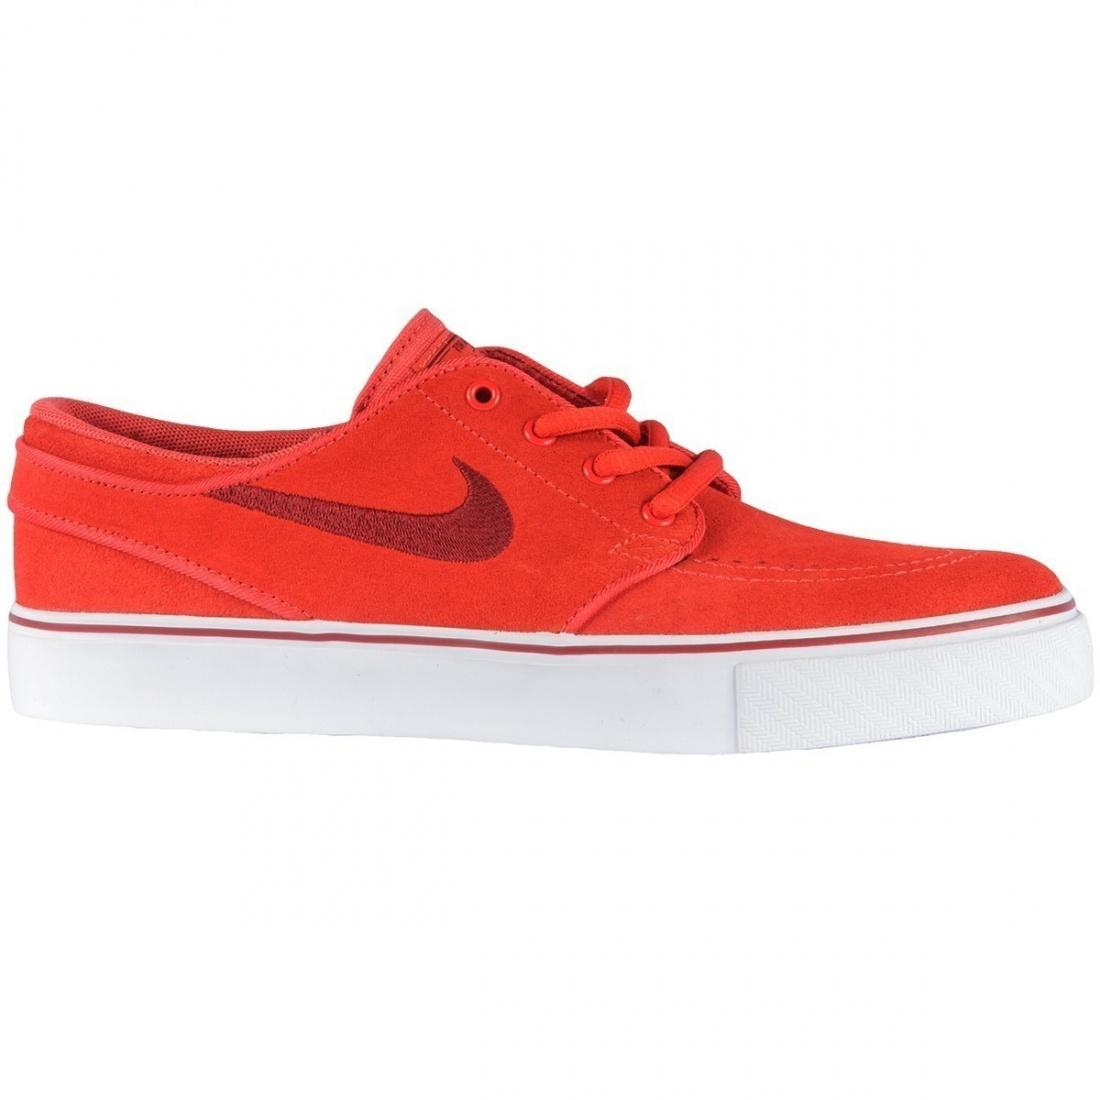 Nike SB Кеды Nike SB Stefan Janoski (GS) TRACK RED/TEAM RED, , , SU17 6 nike nike downshifter 6 gs ps